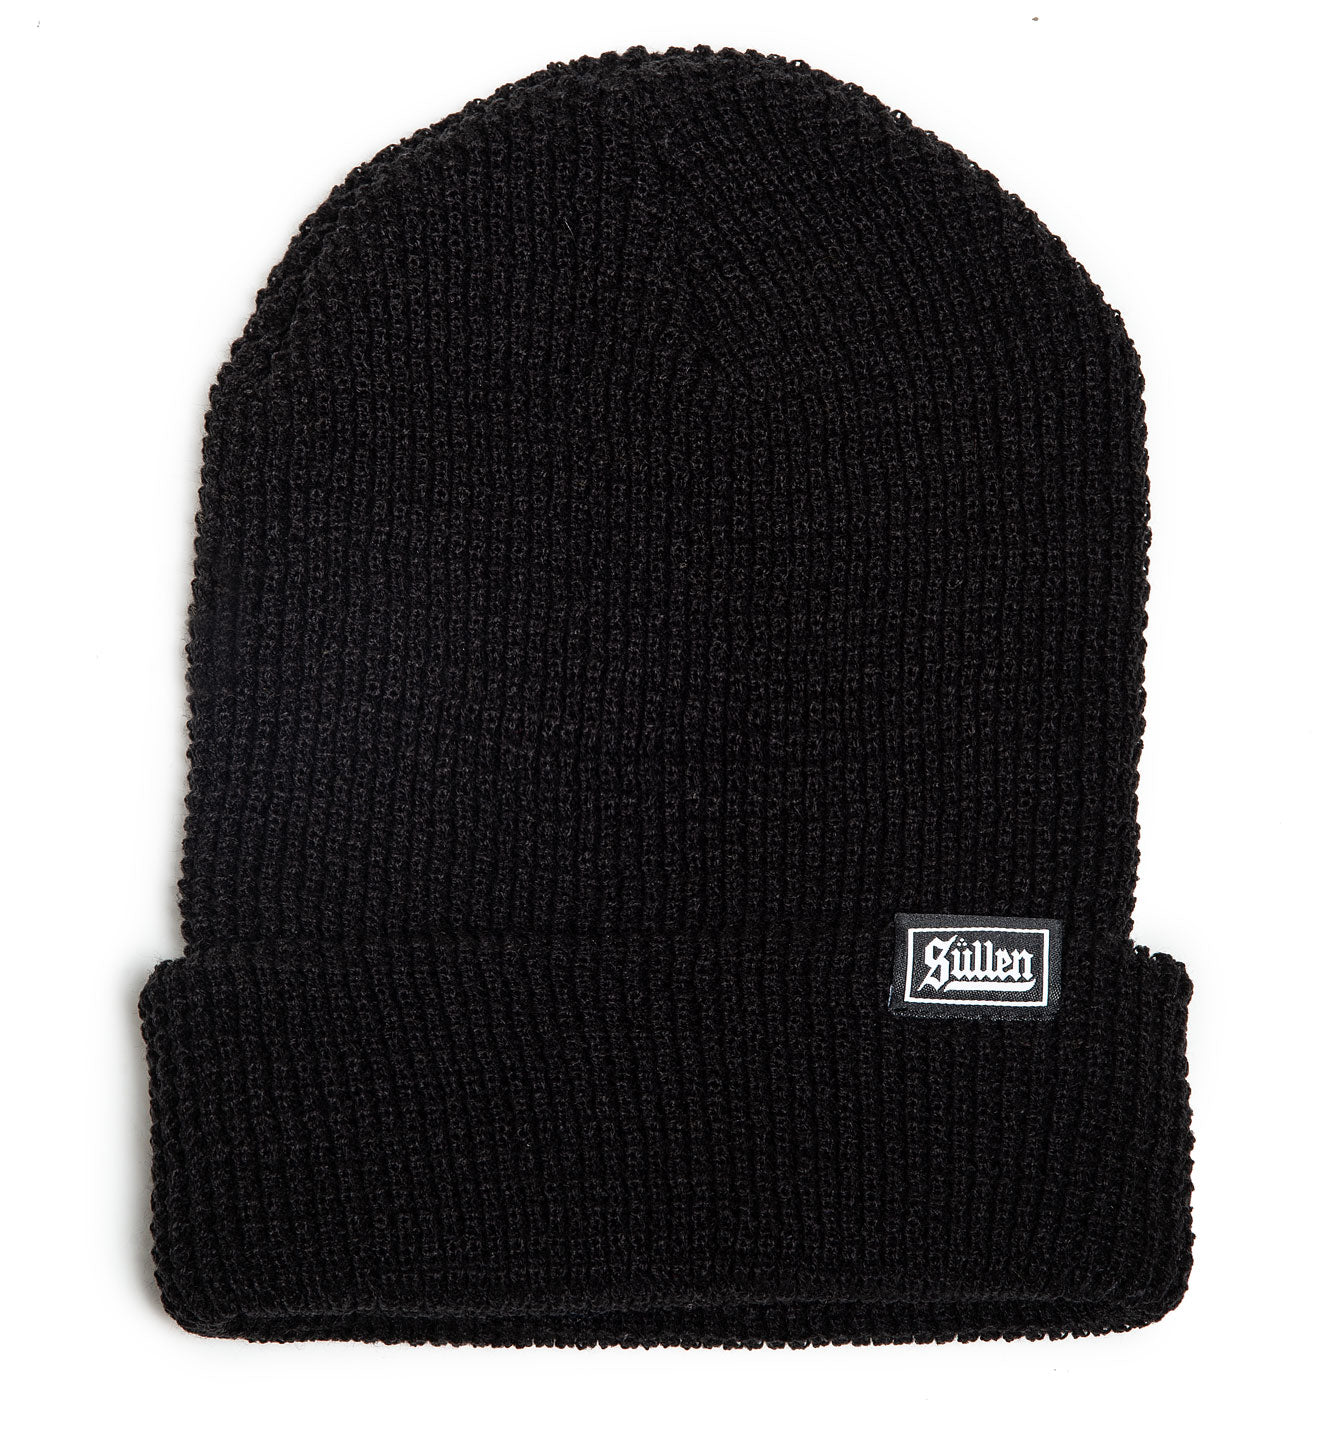 Lincoln Beanie Black